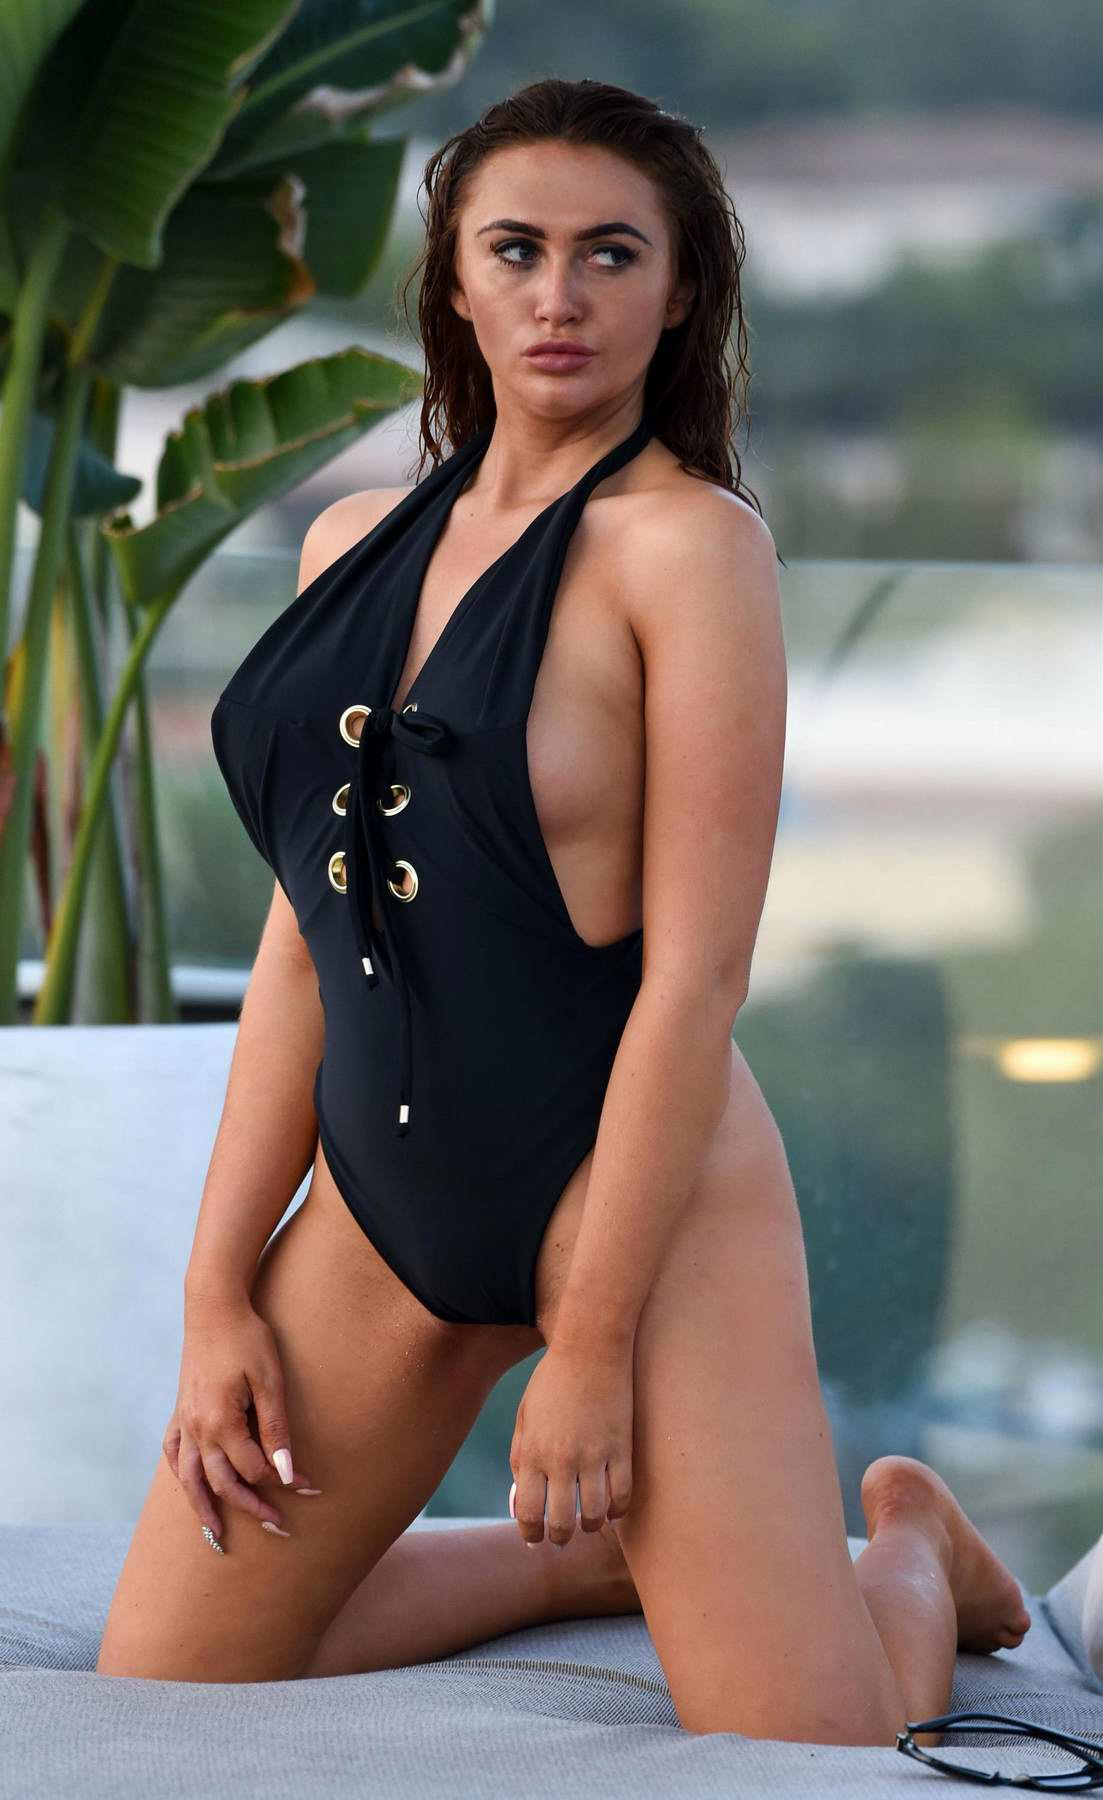 Charlotte Dawson wearing black swimsuit while taking a break from filming at a 5 star hotel in Greece